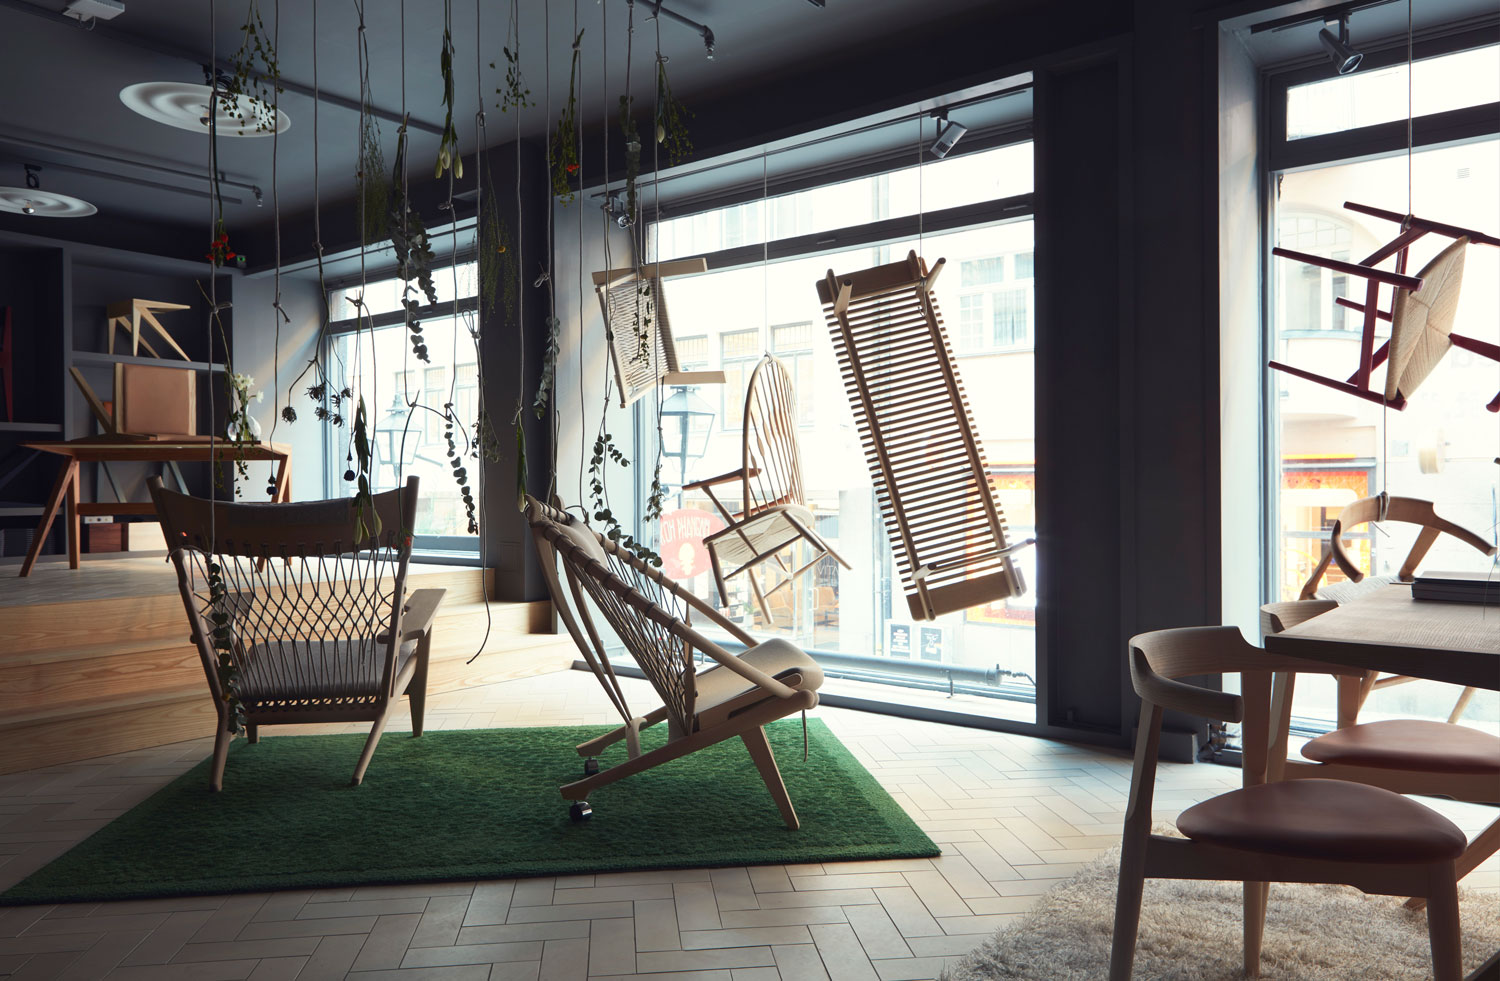 Alma: Member's Club For Creatives in Stockhom by Tham & Videgård | Yellowtrace